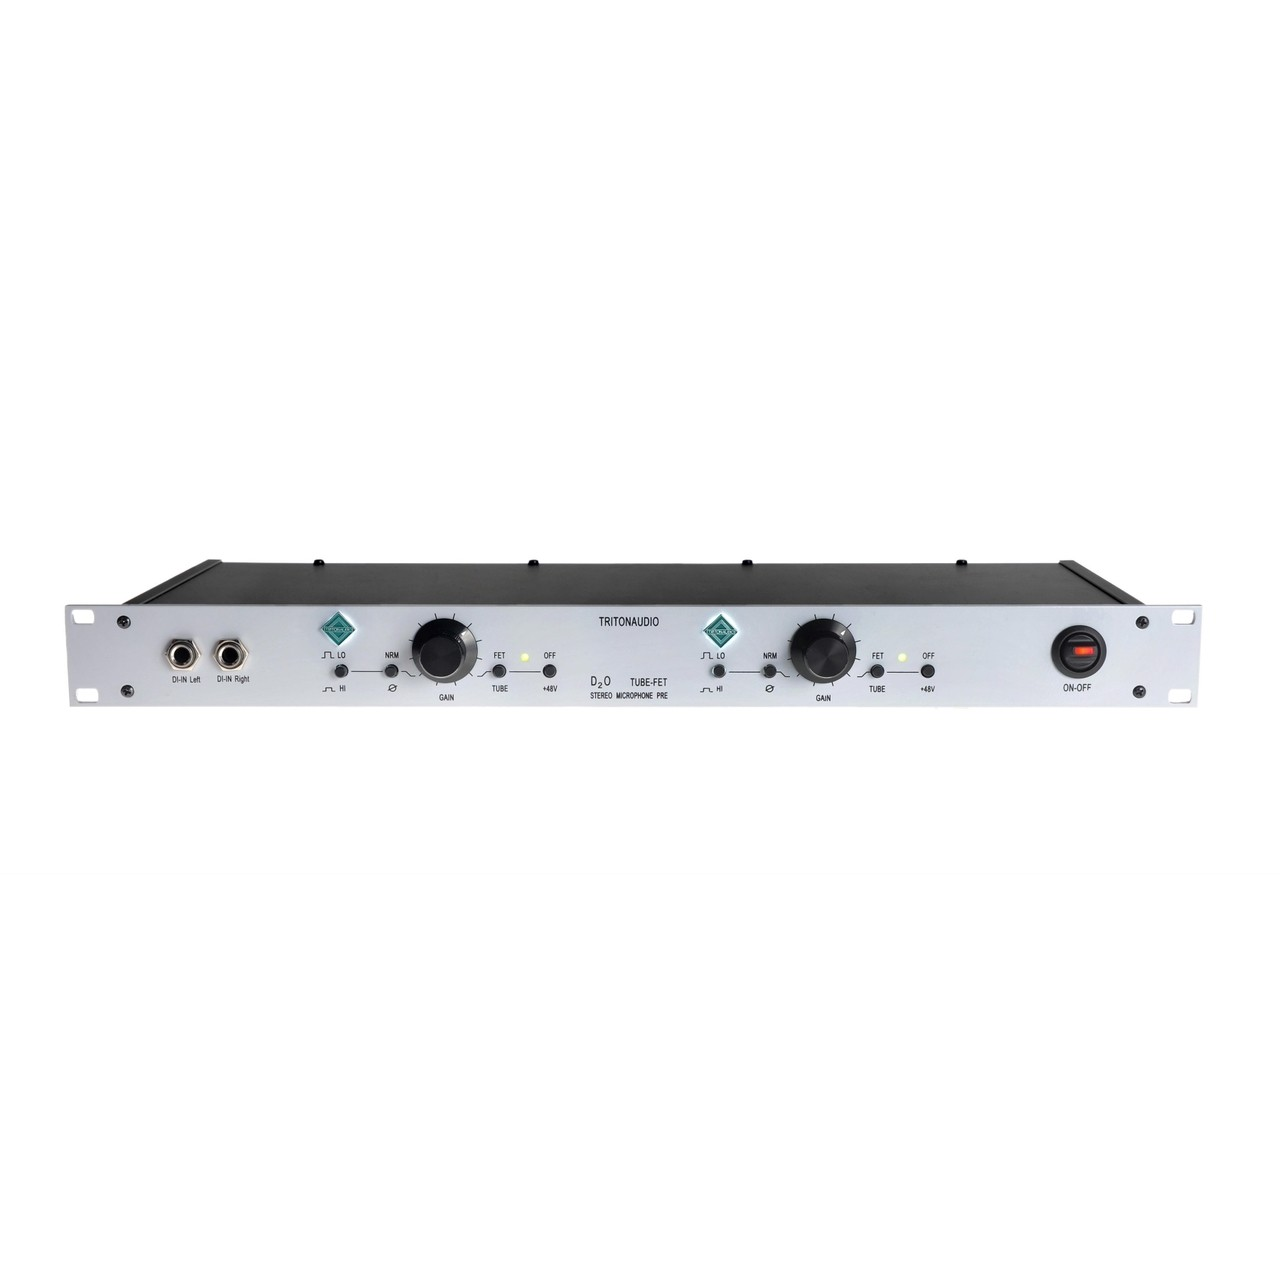 Triton D20 Stereo Preamps Audio High Gain Jfet Amplifier